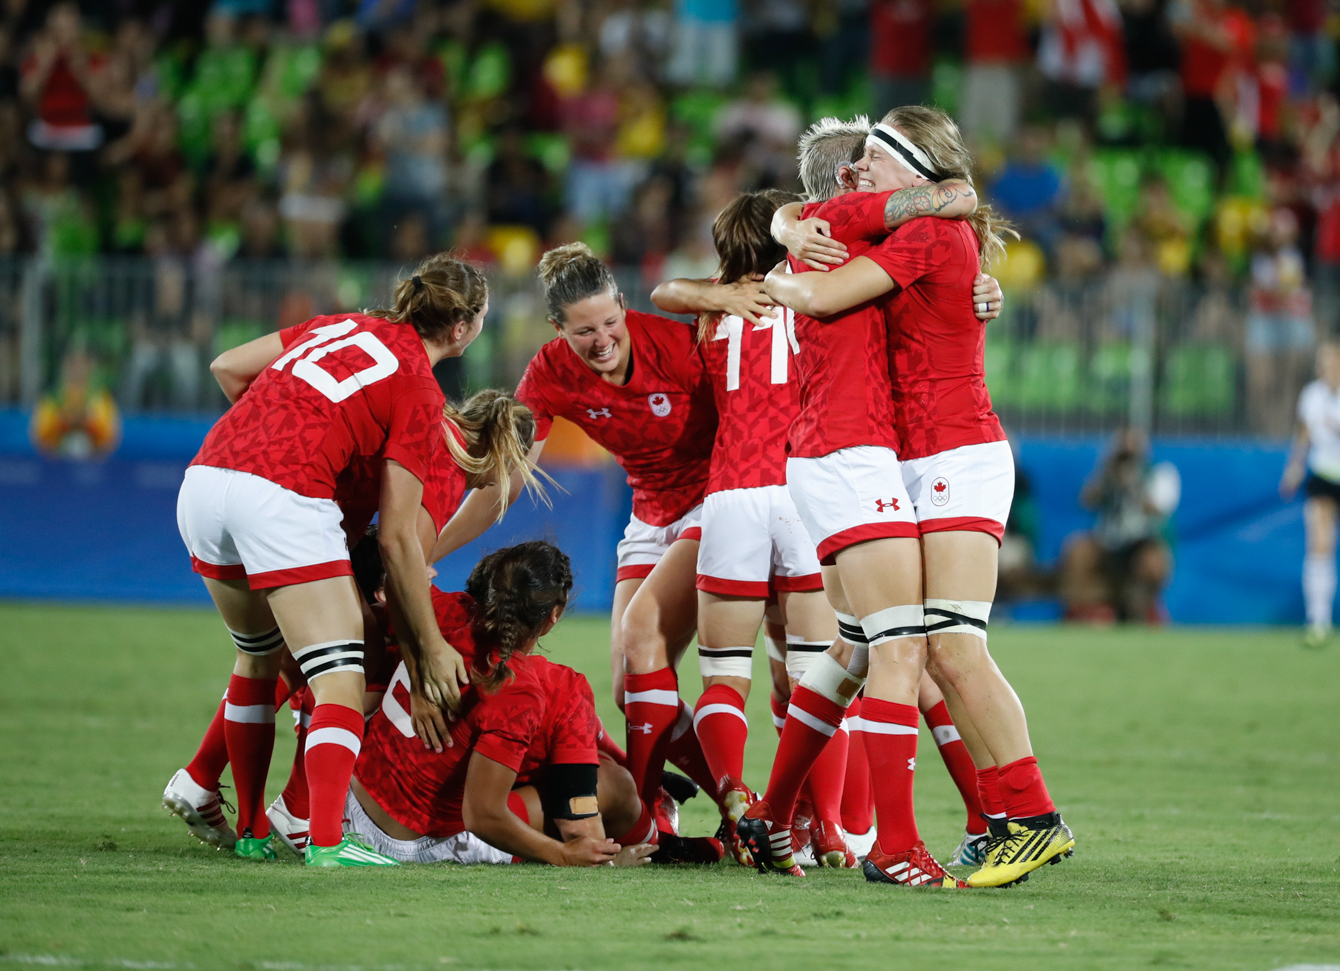 Canada's players celebrates after winning the women's rugby sevens bronze medal match against Great Britain at the Summer Olympics in Rio de Janeiro, Brazil, Monday, Aug. 8, 2016. (Photo/Stephen Hosier)Canada's players celebrates after winning the women's rugby sevens bronze medal match against Great Britain at the Summer Olympics in Rio de Janeiro, Brazil, Monday, Aug. 8, 2016. (Photo/Mark Blinch)